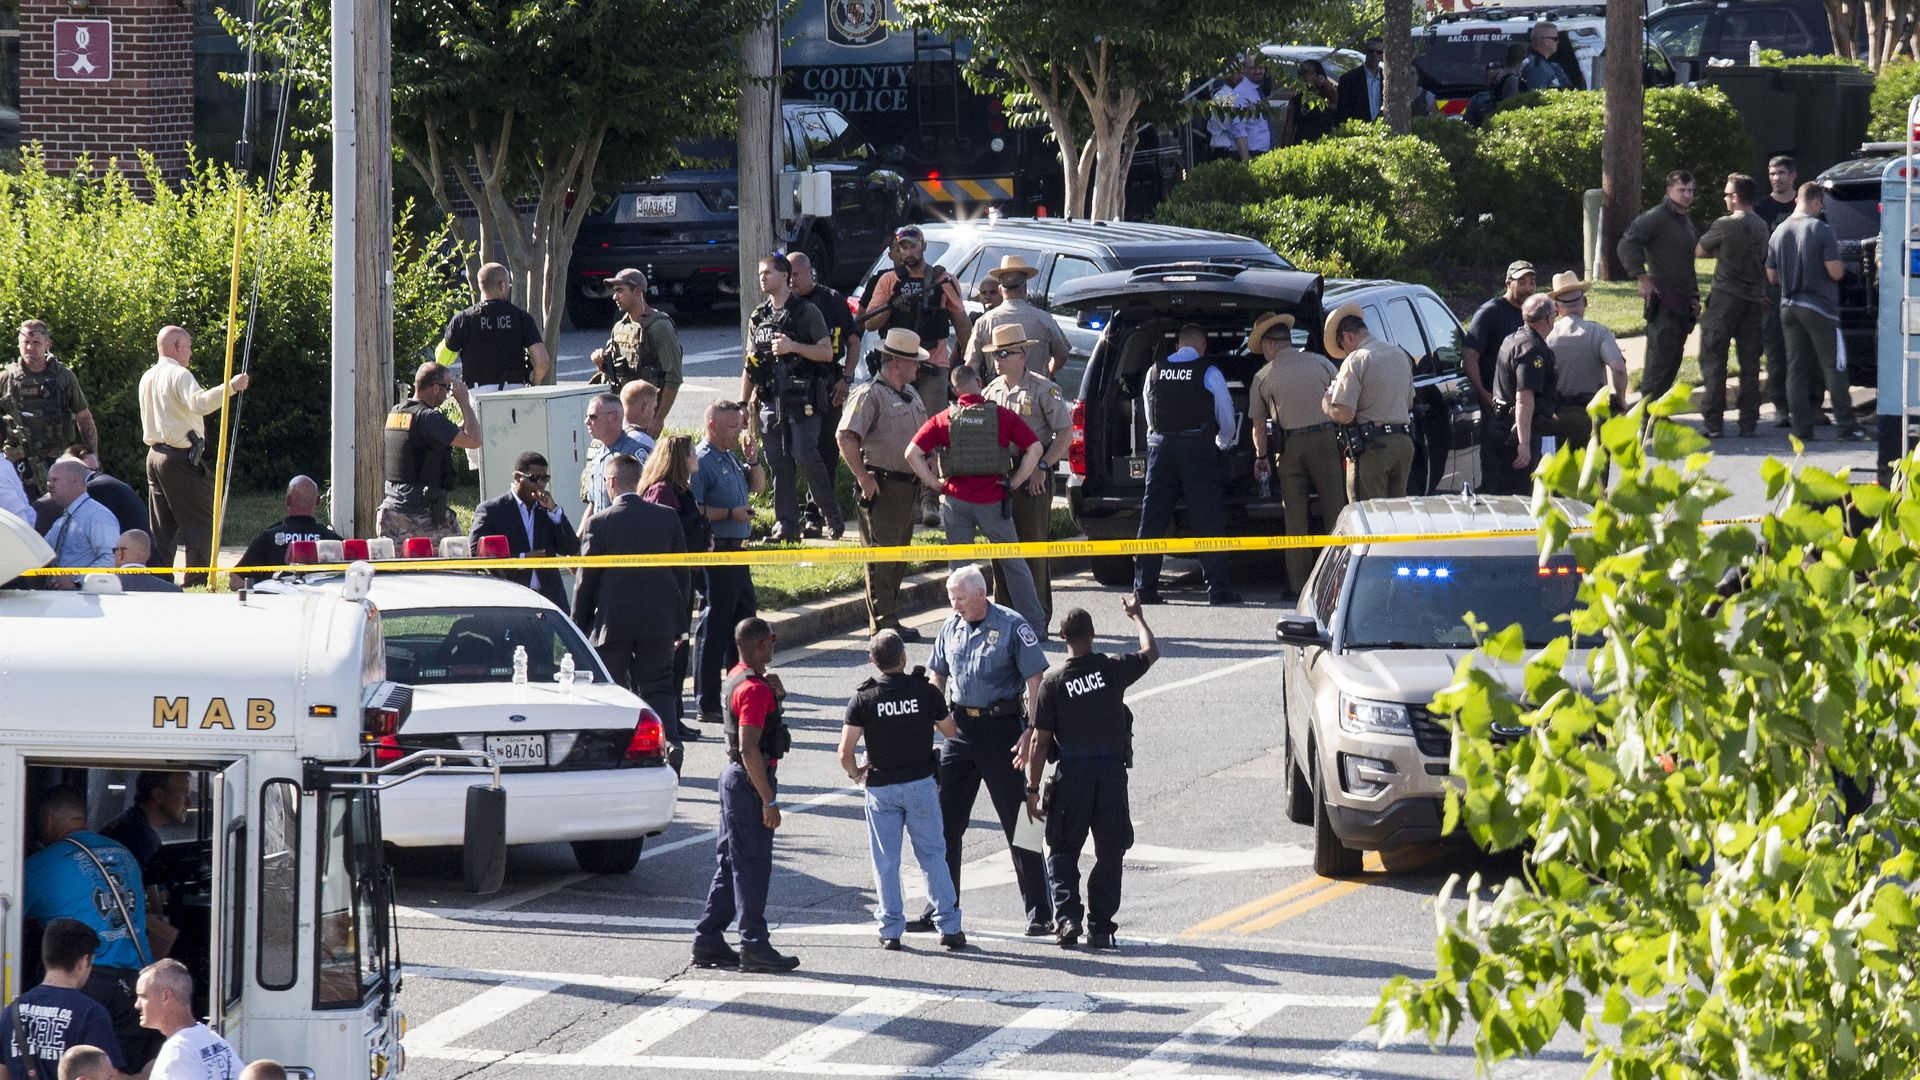 Police and press gathered on the scene of the shooting in Annapolis, Maryland.